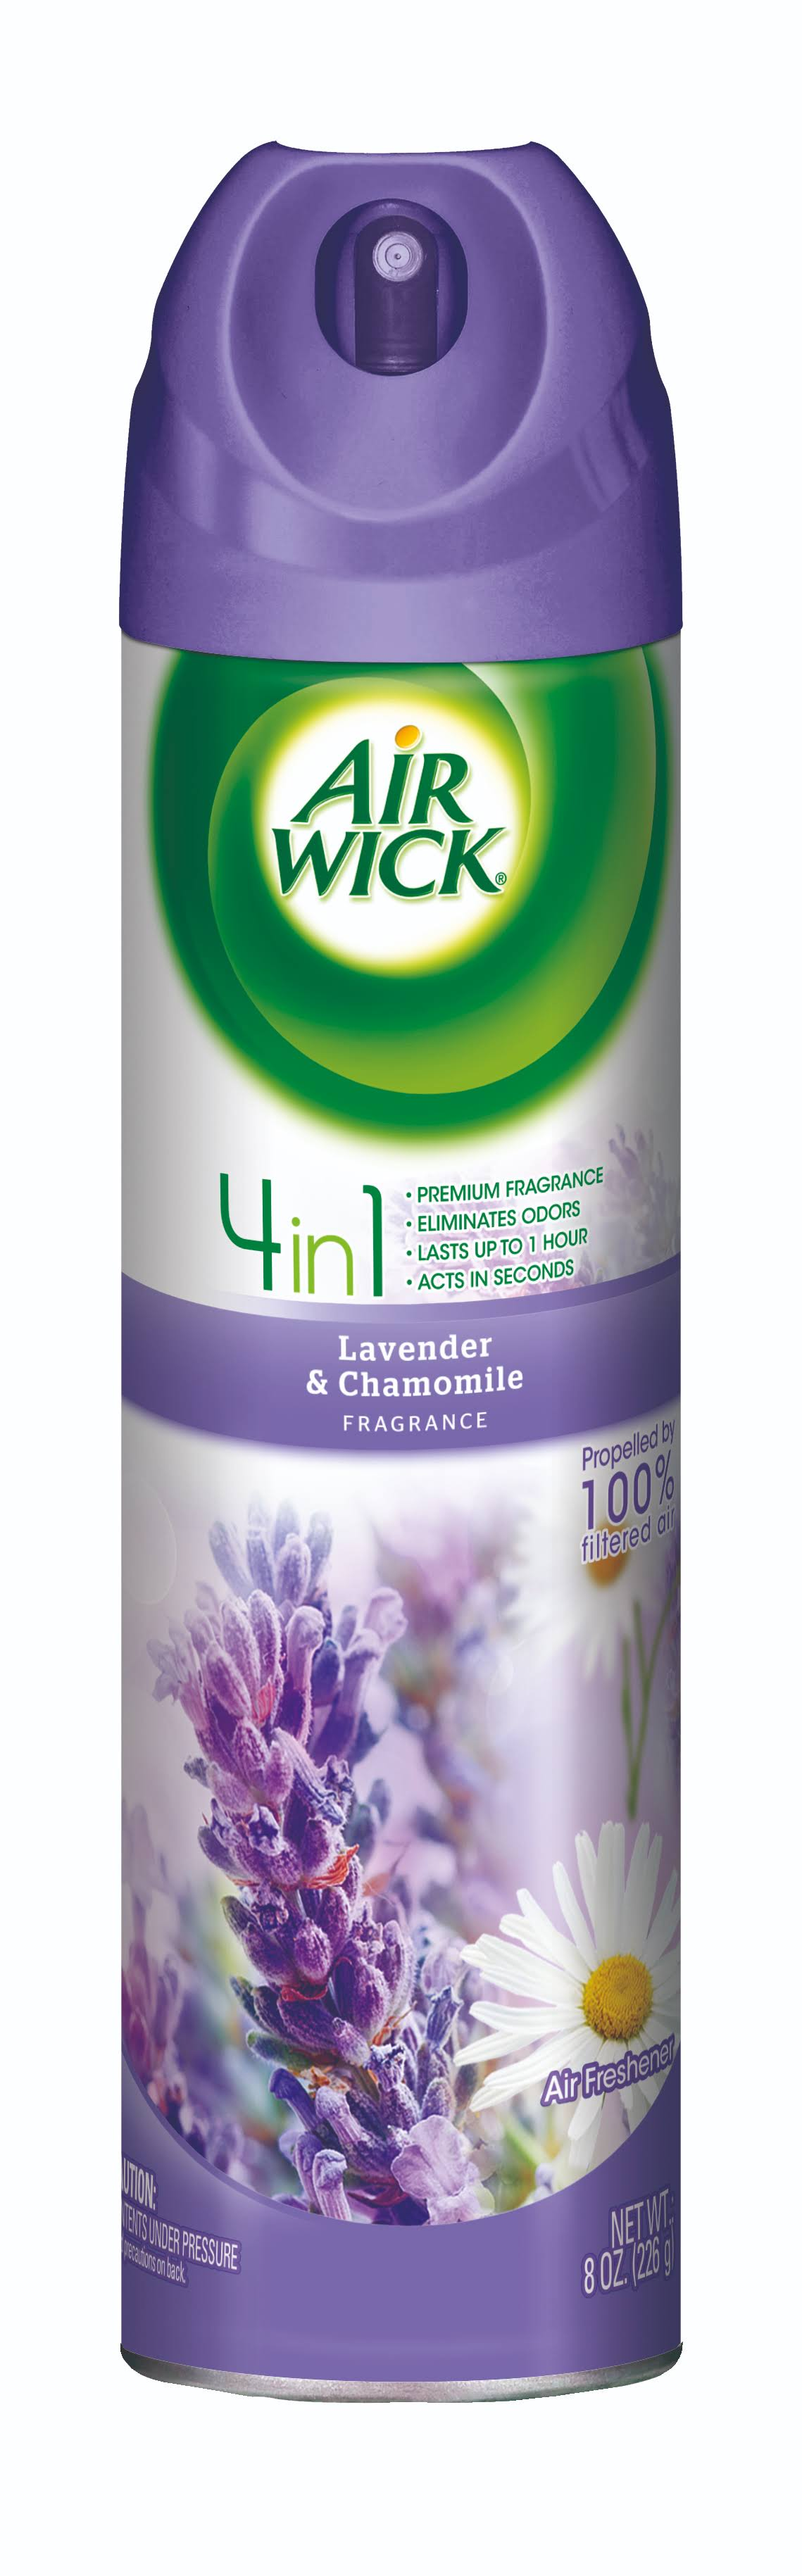 Air Wick 4 In 1 Air Freshener Spray - Lavender & Chamomile, 8oz